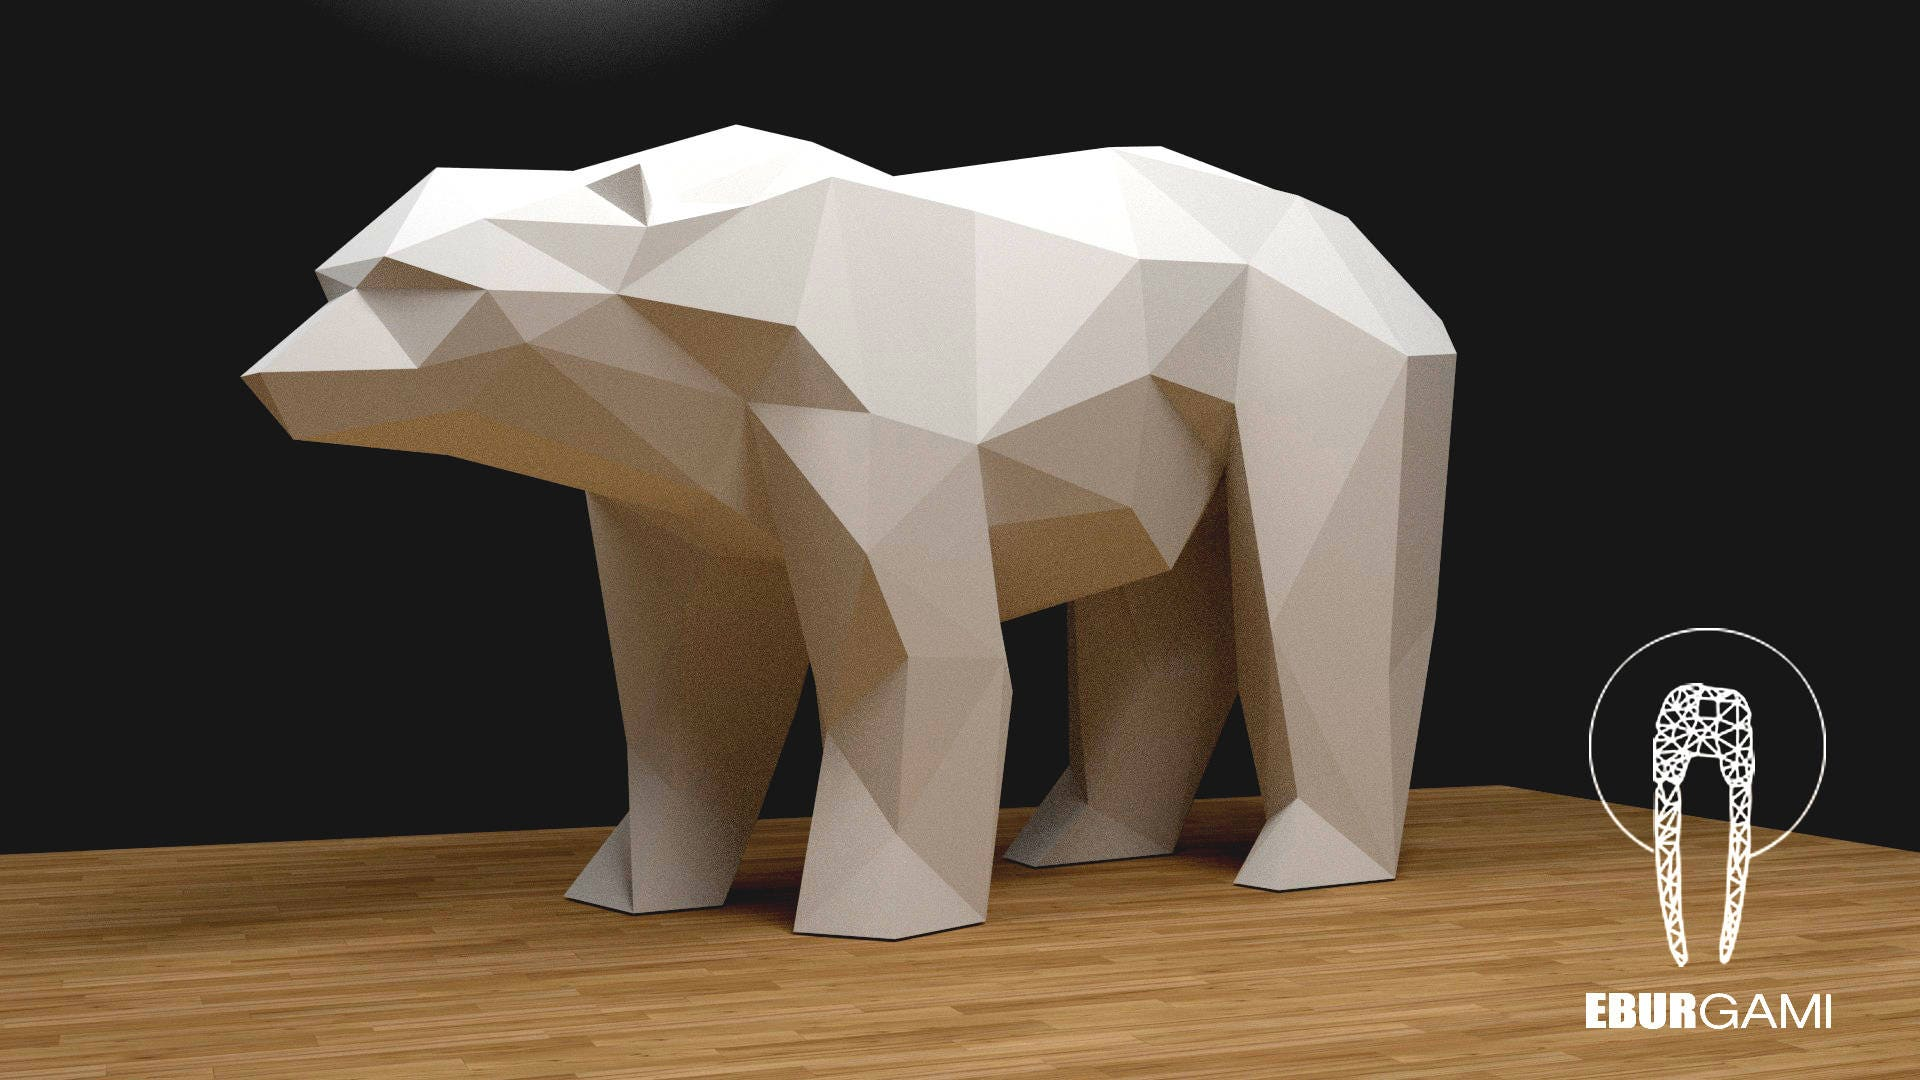 Bear Papercraft Xxl 3d Build Your Own Low Poly Etsy Origami Diagram Paper Sculpture Pdf Download Diy Gift Wall Decor Home Office